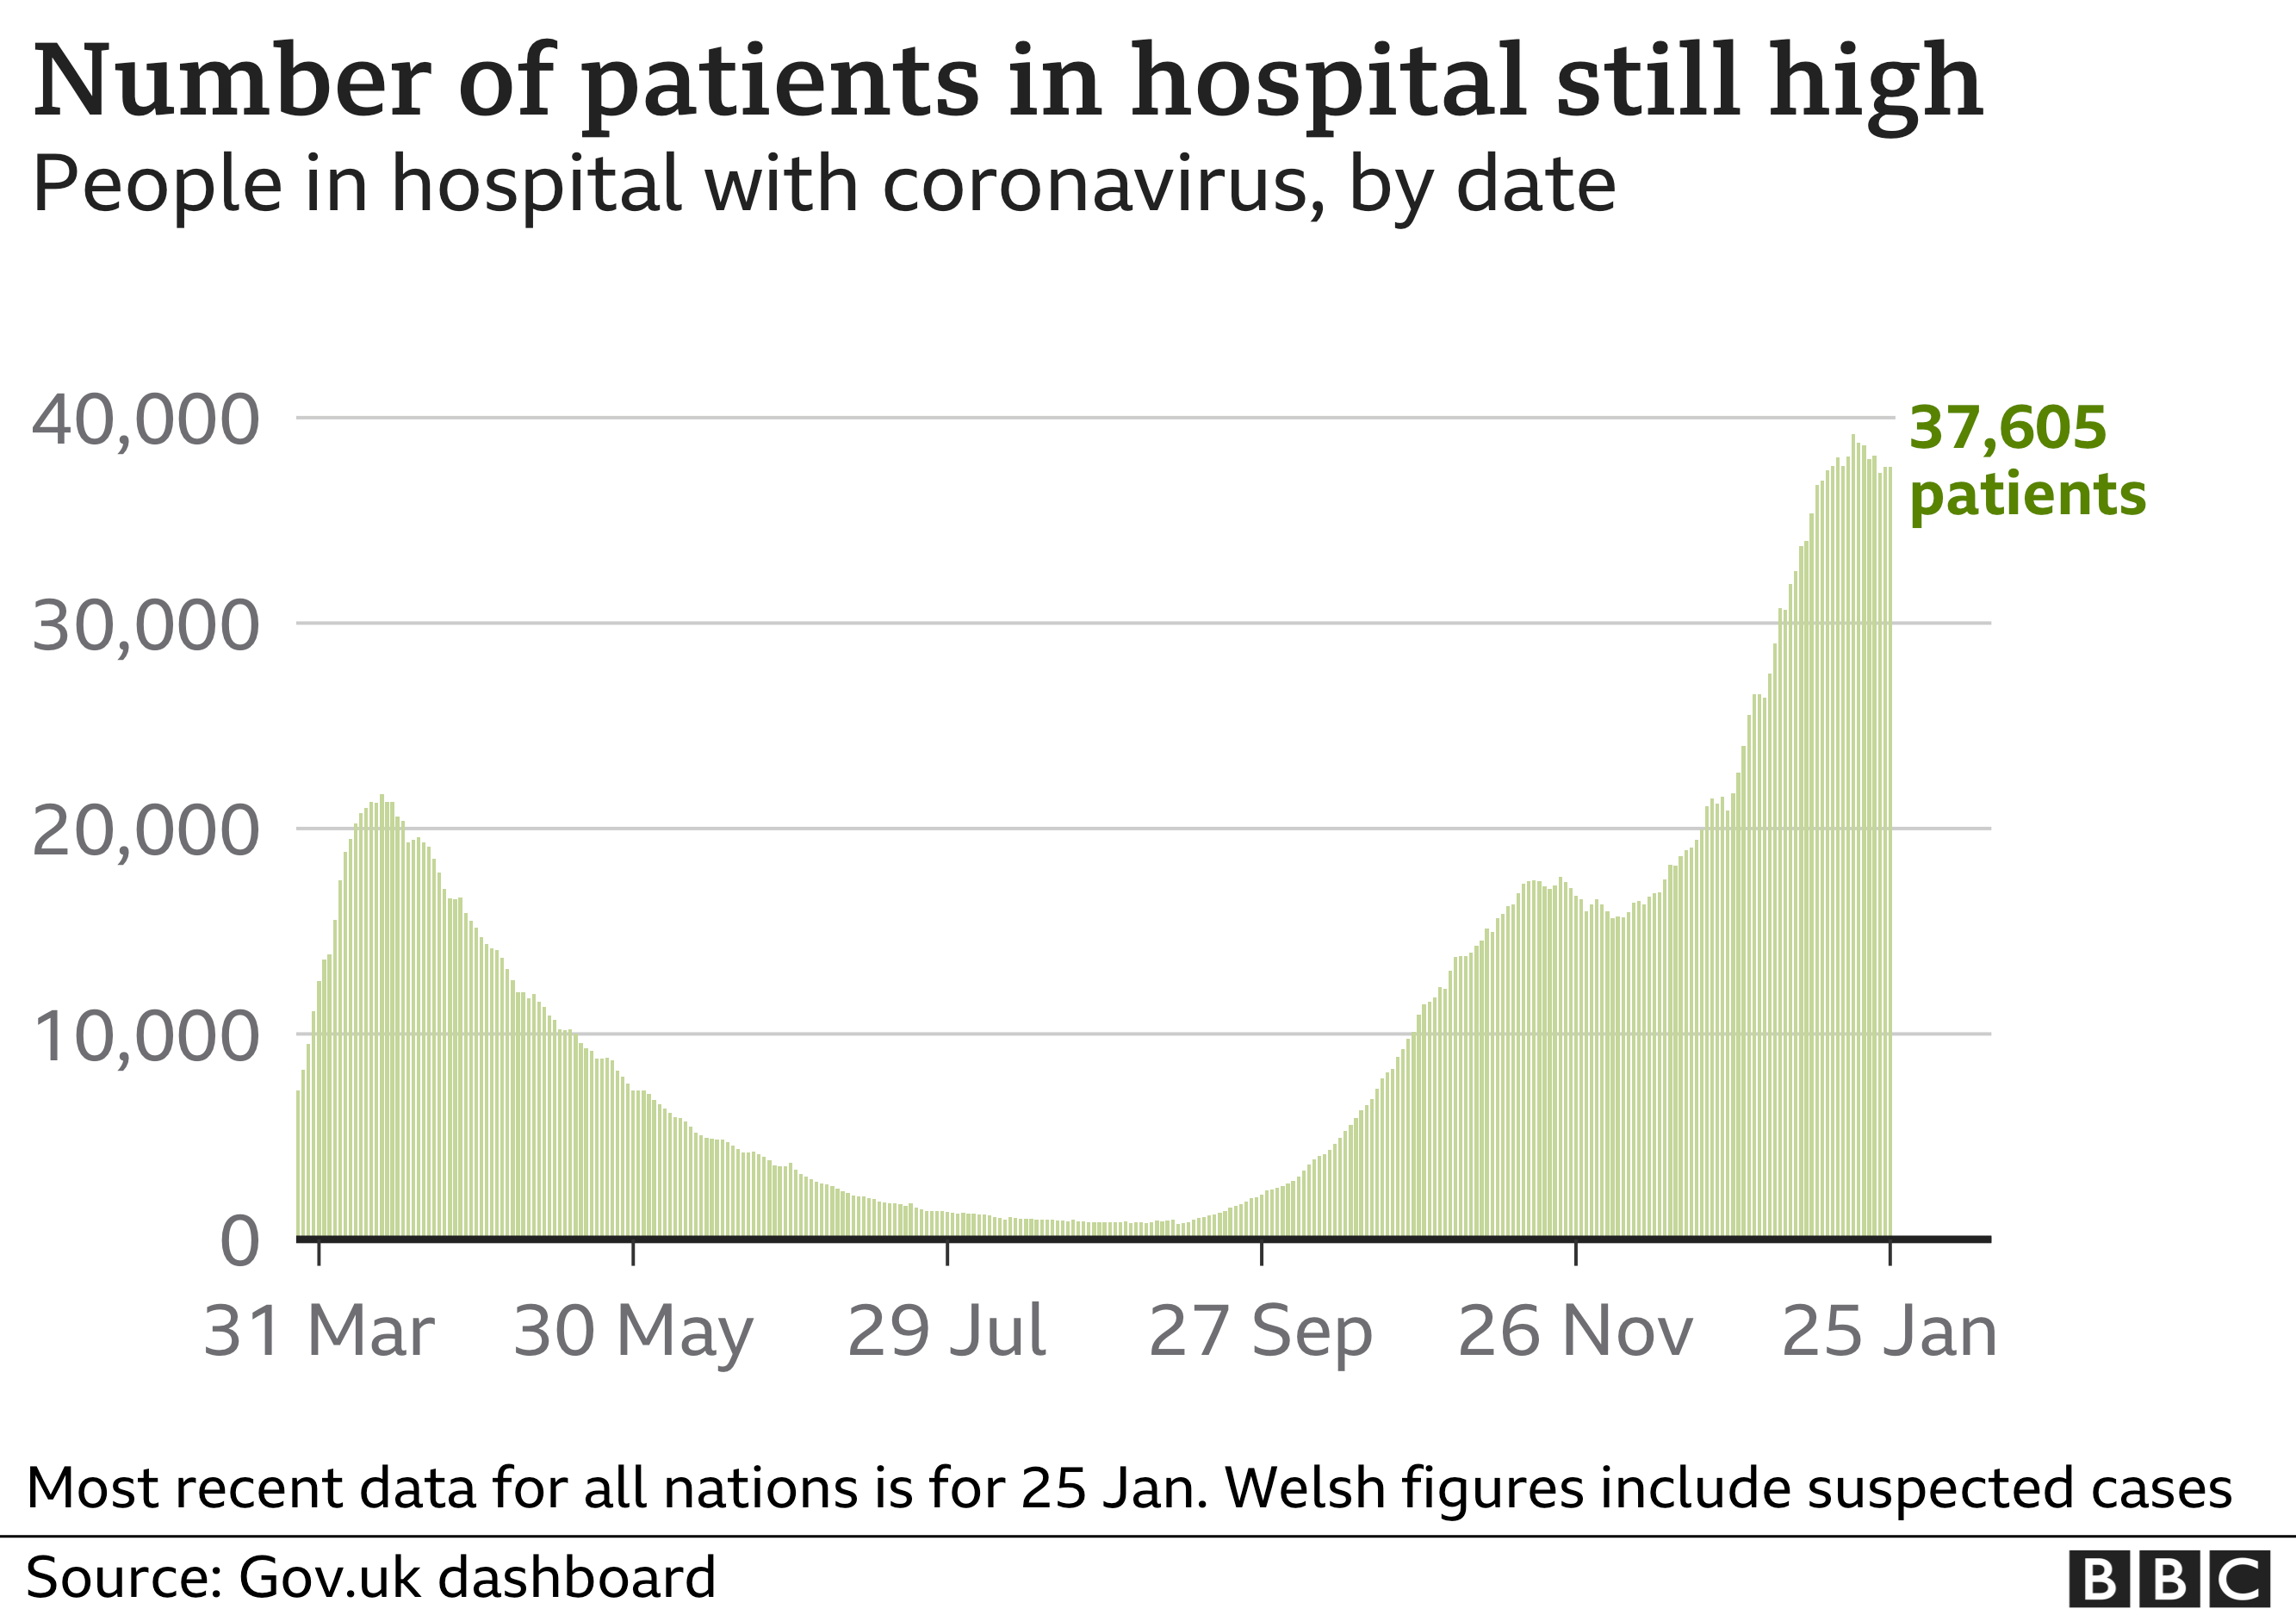 Chart showing the number of coronavirus patients in hospital is still high